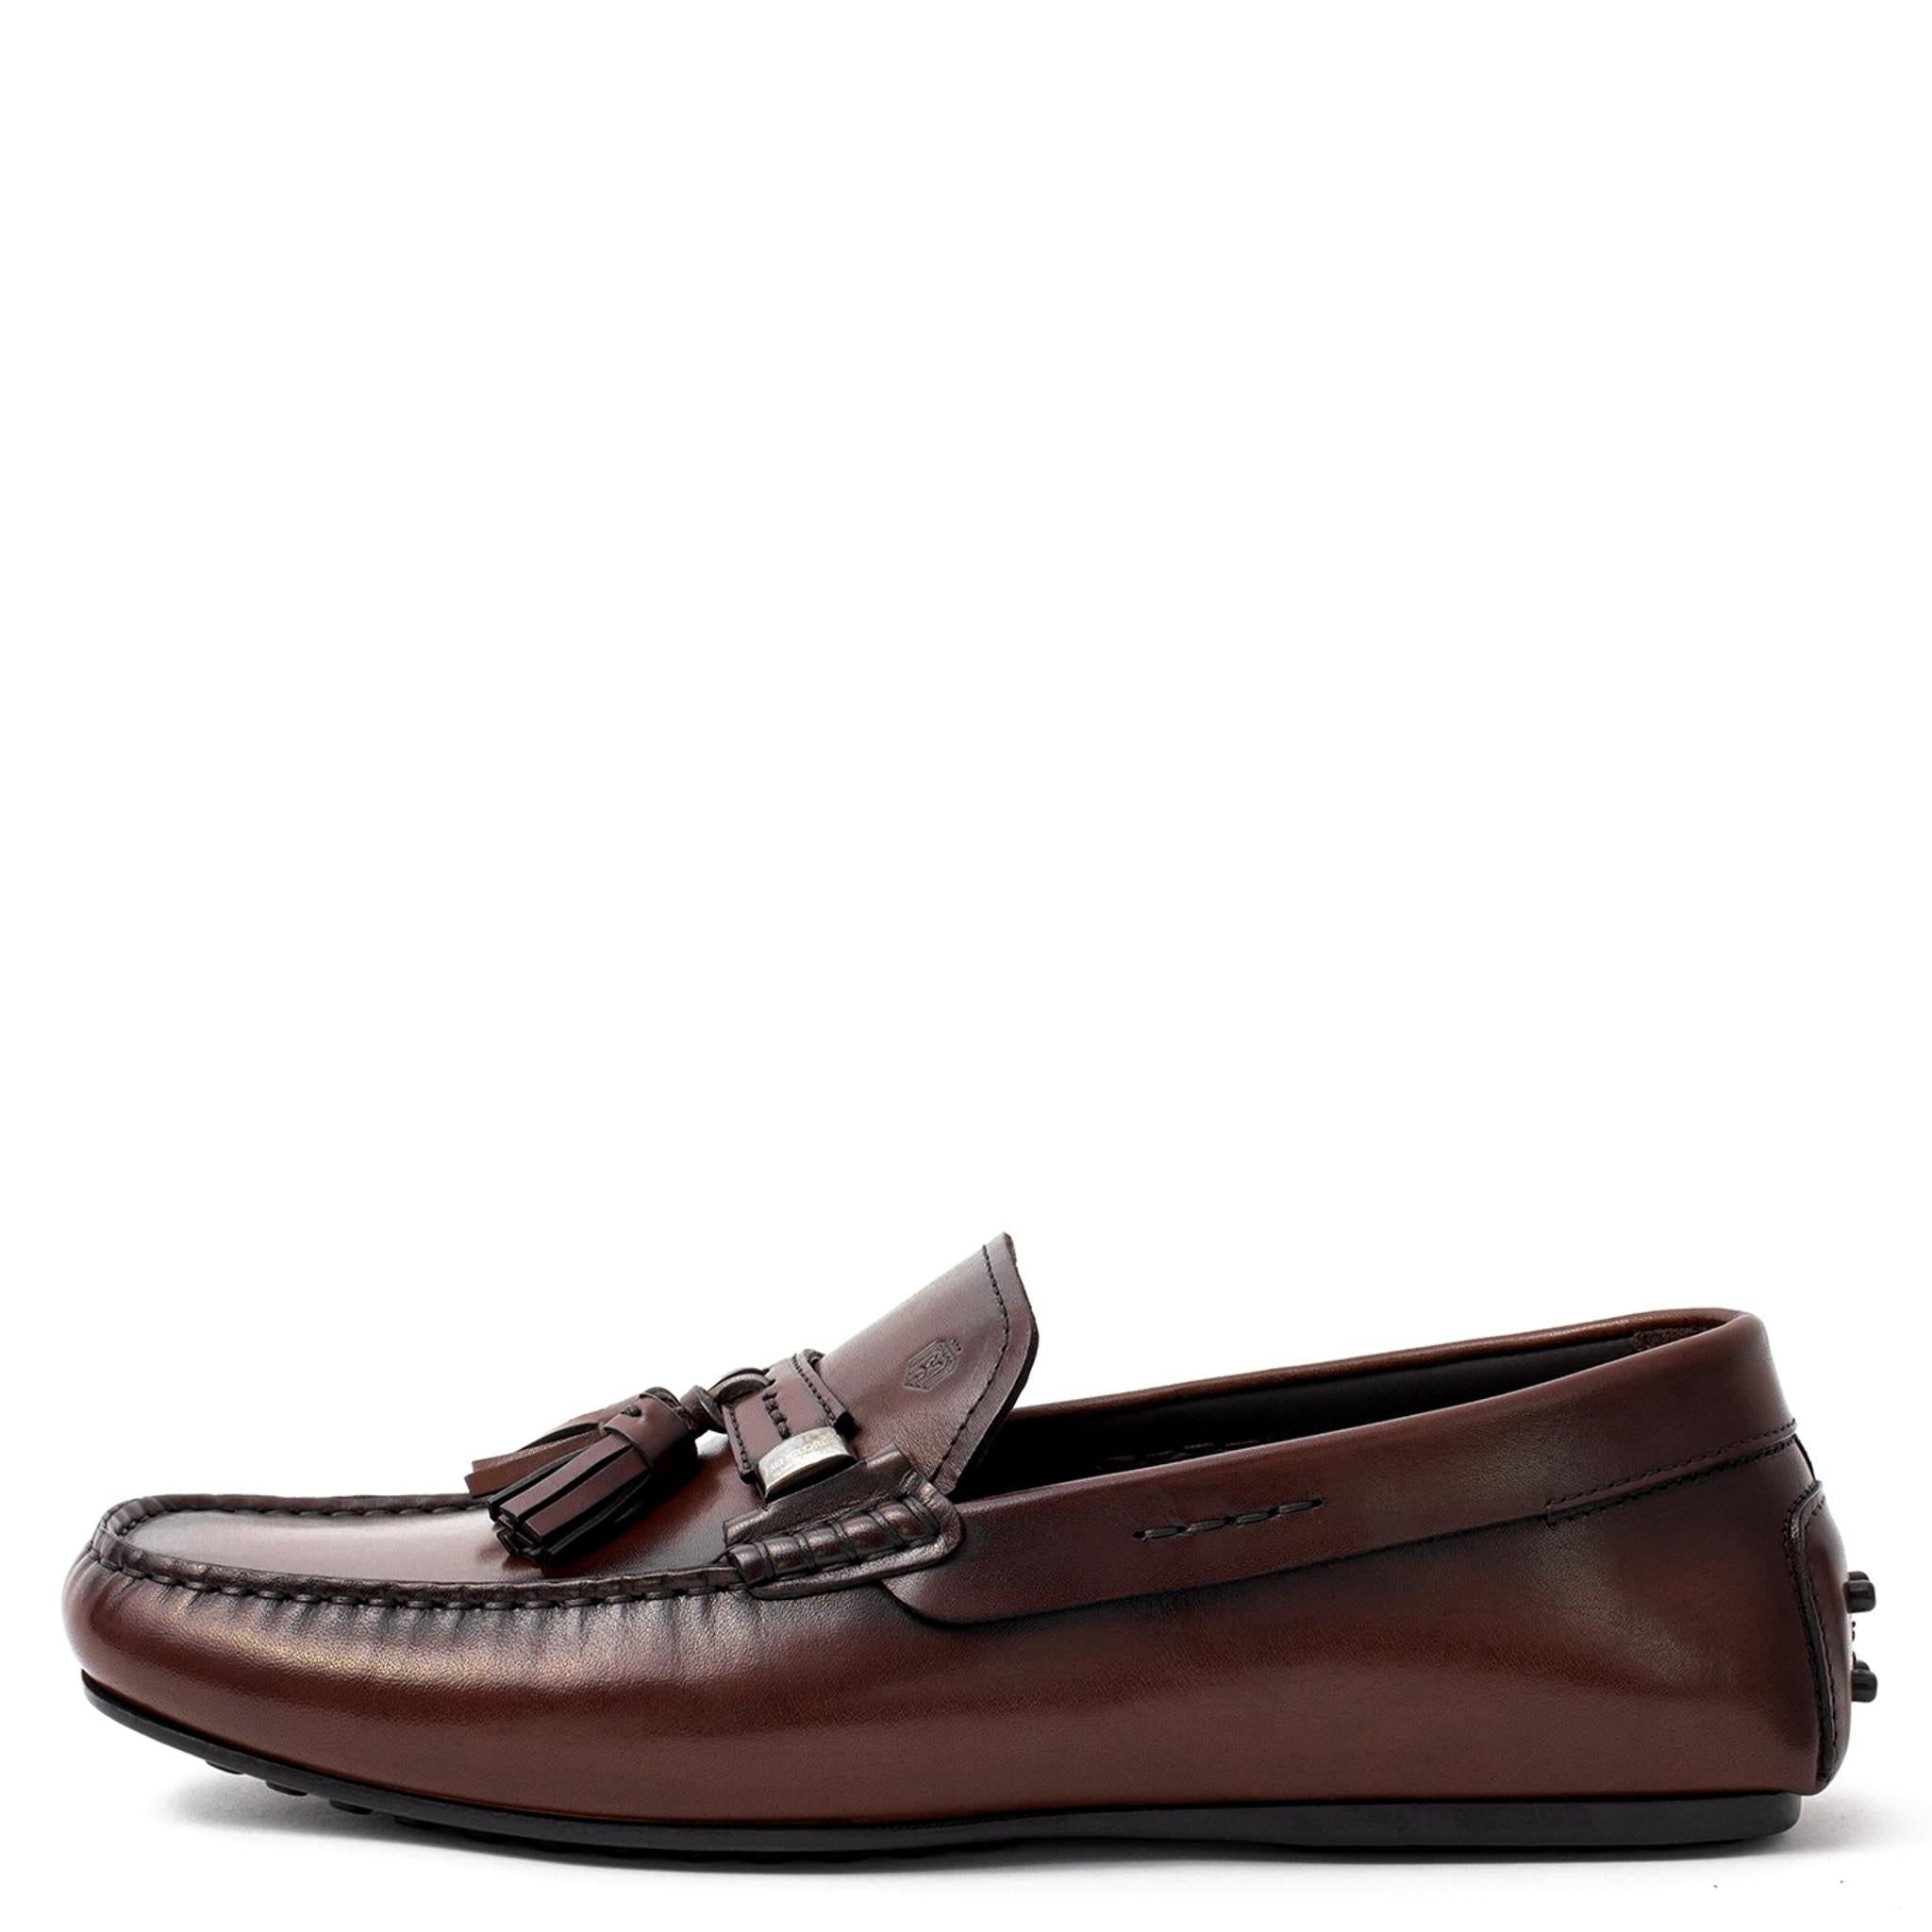 5d4a6e8dc82 Men Brown Leather With Tassels Moccasin Loafer